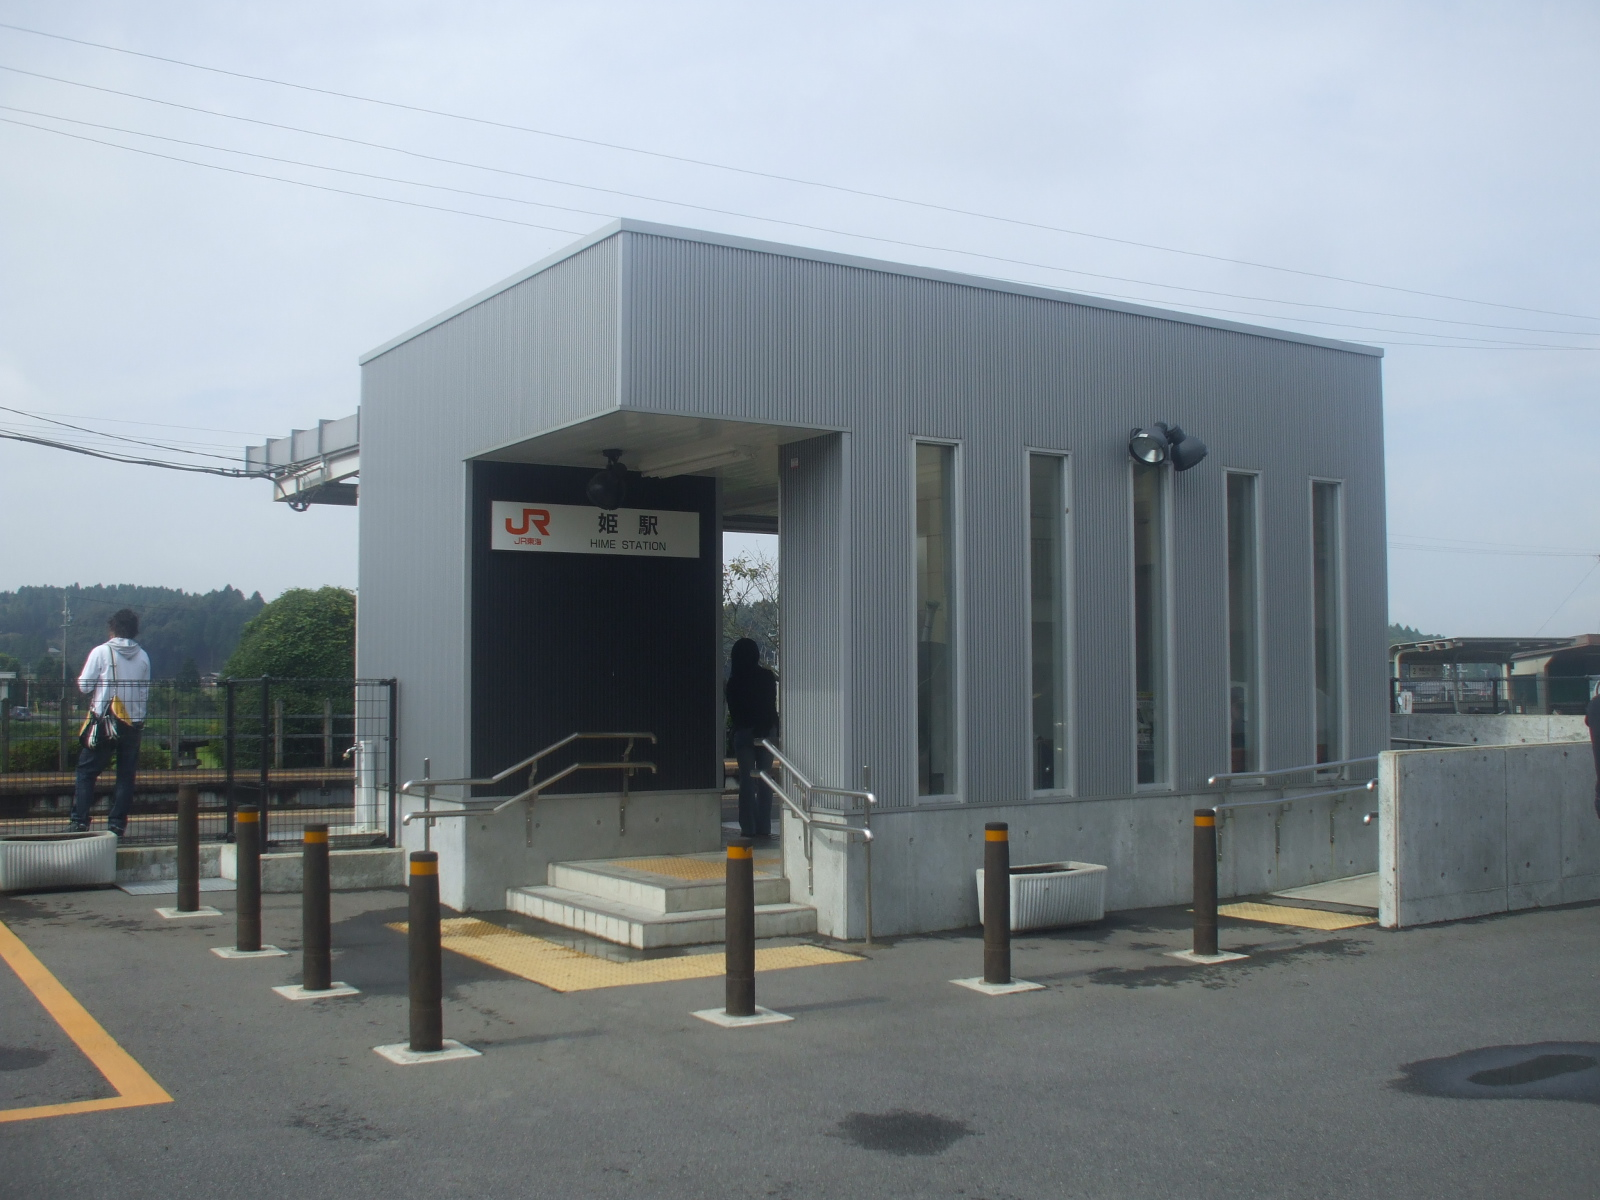 http://upload.wikimedia.org/wikipedia/commons/5/58/Jr_Central_Hime_Station.JPG